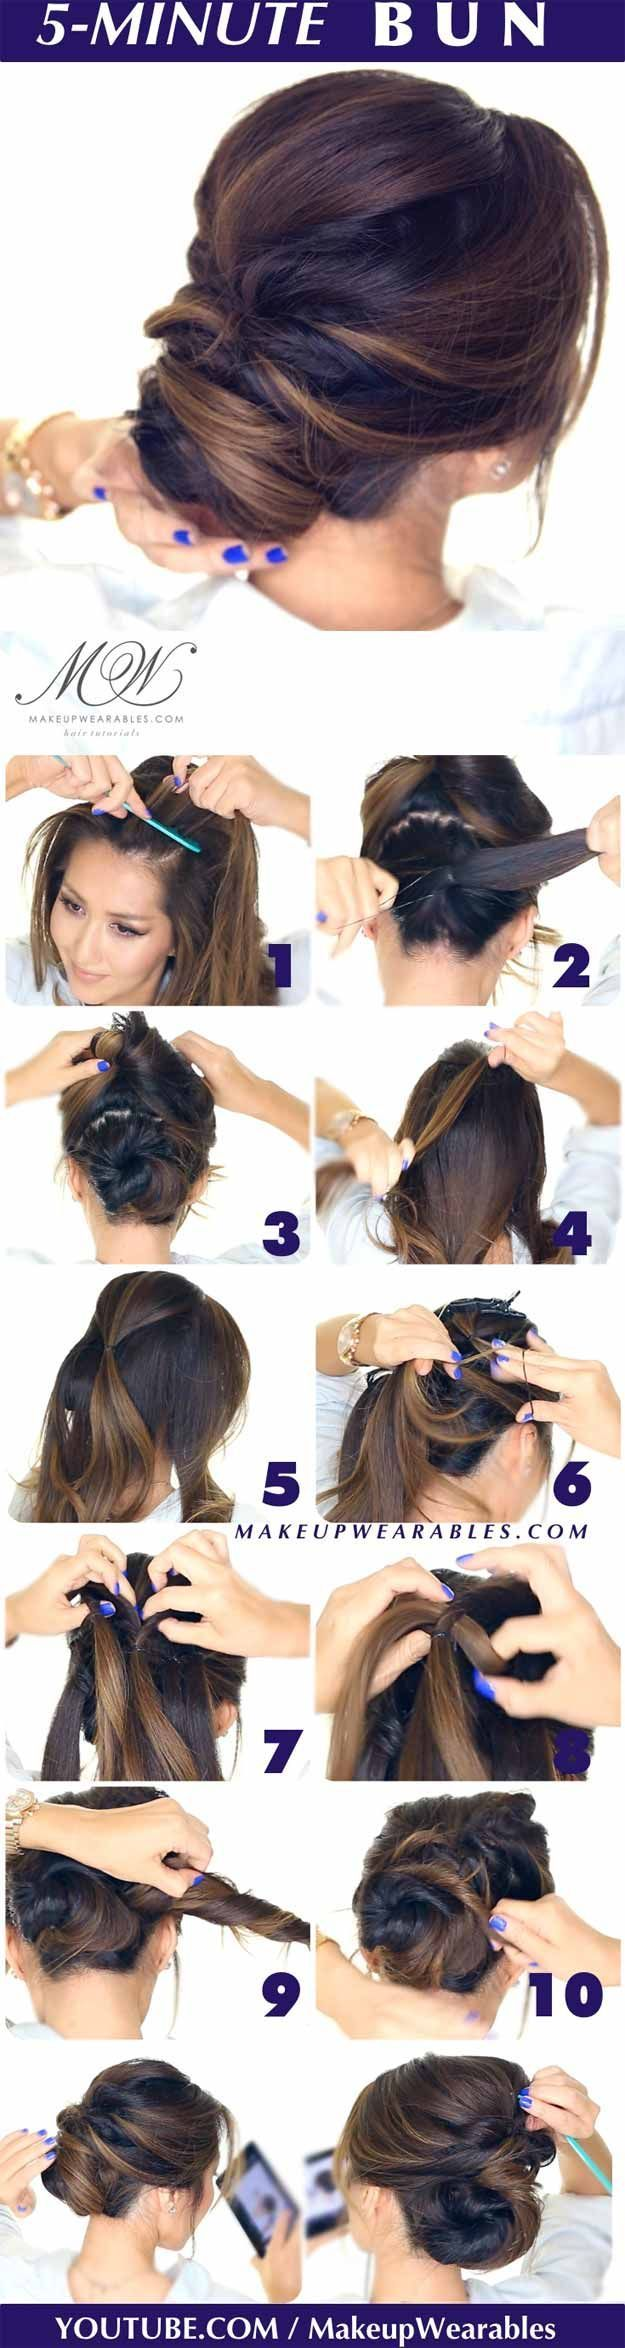 Best Hairstyles For Your 30s -5-Minute Romantic Updo Bun- Hair Dos And Don'ts ...